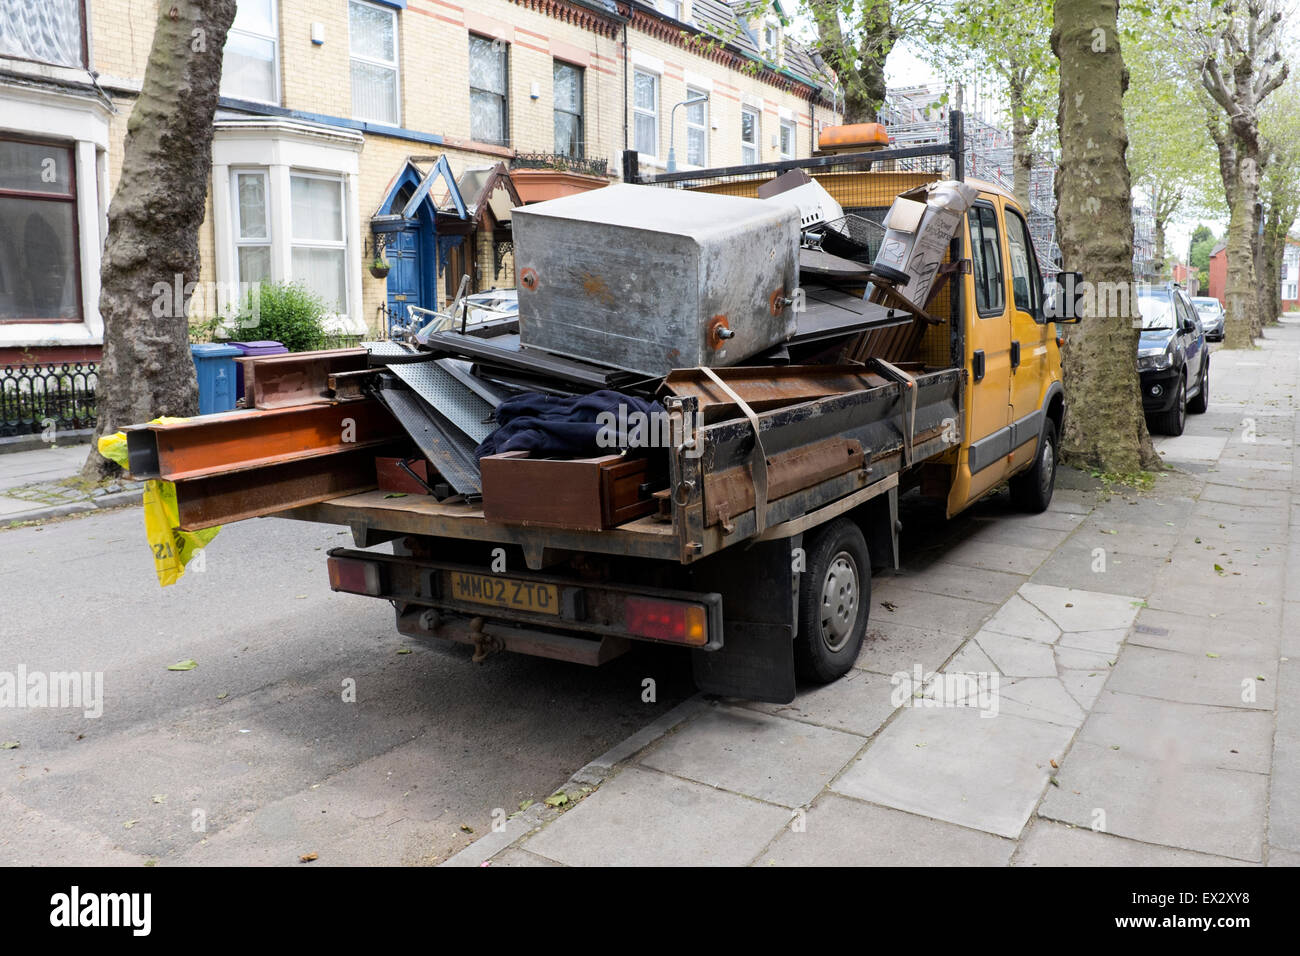 Scrap Metal Van Stock Photos & Scrap Metal Van Stock Images - Alamy